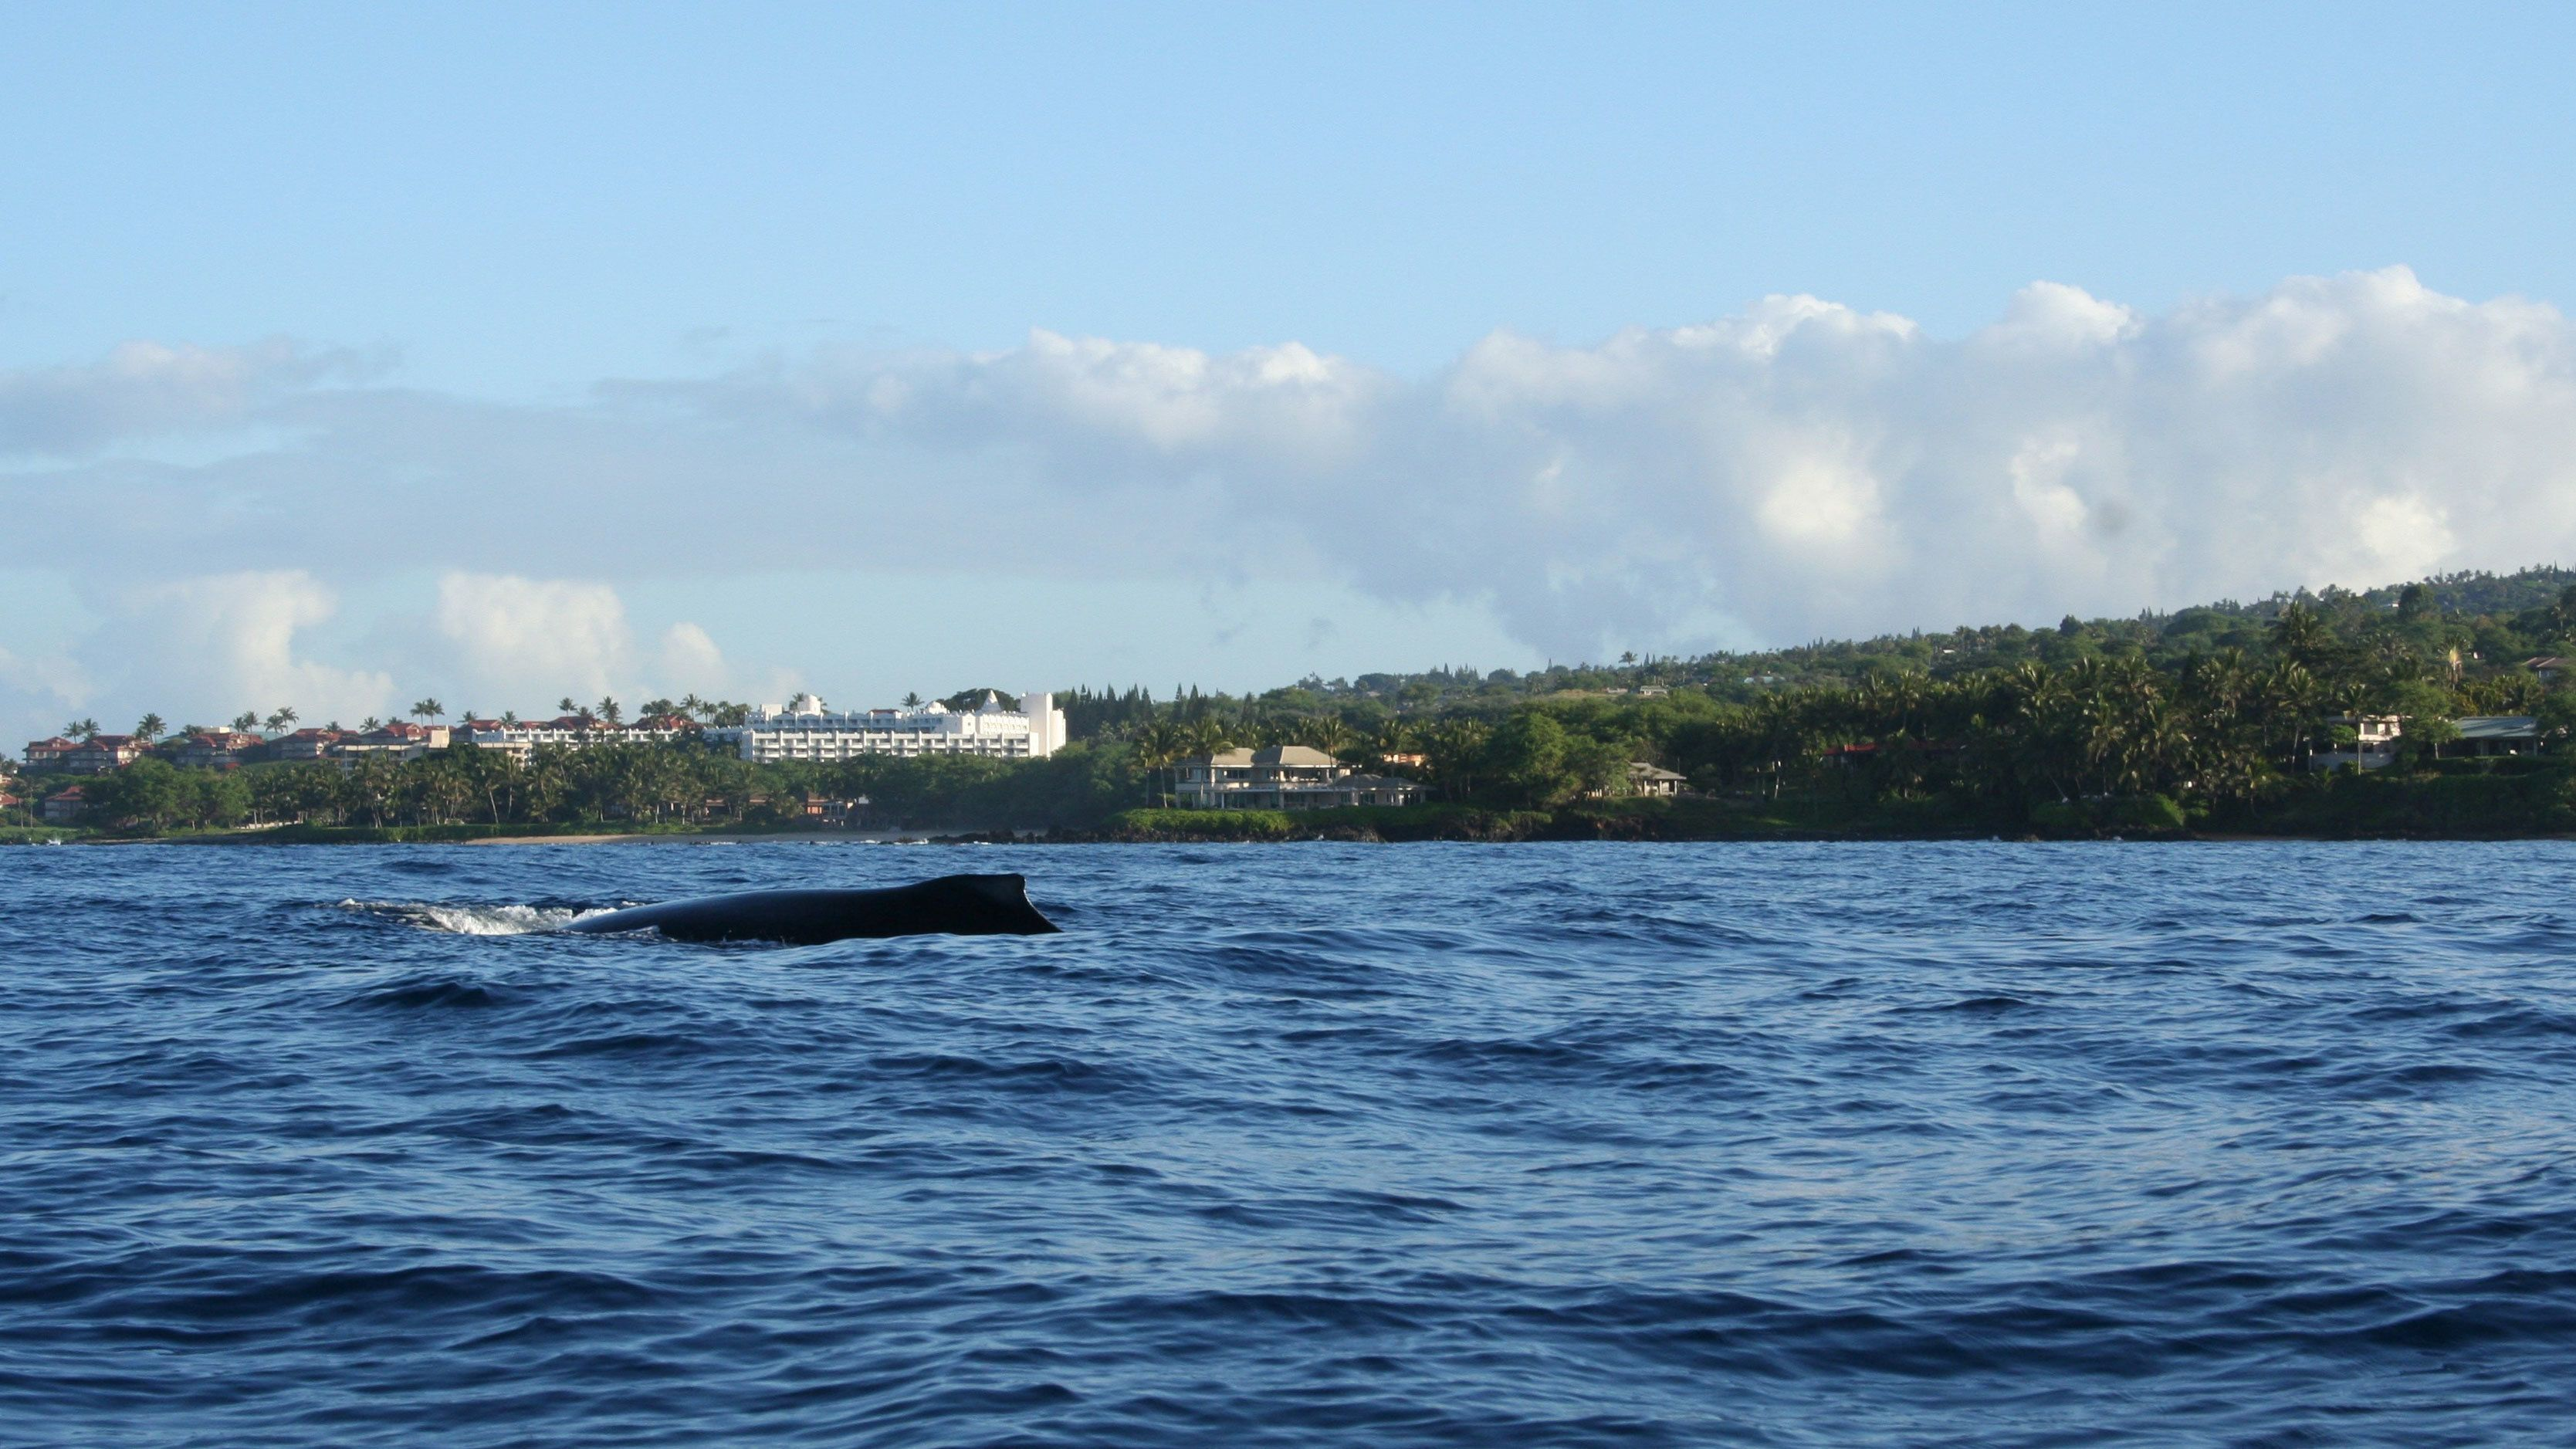 Whale breaching surface in Maui